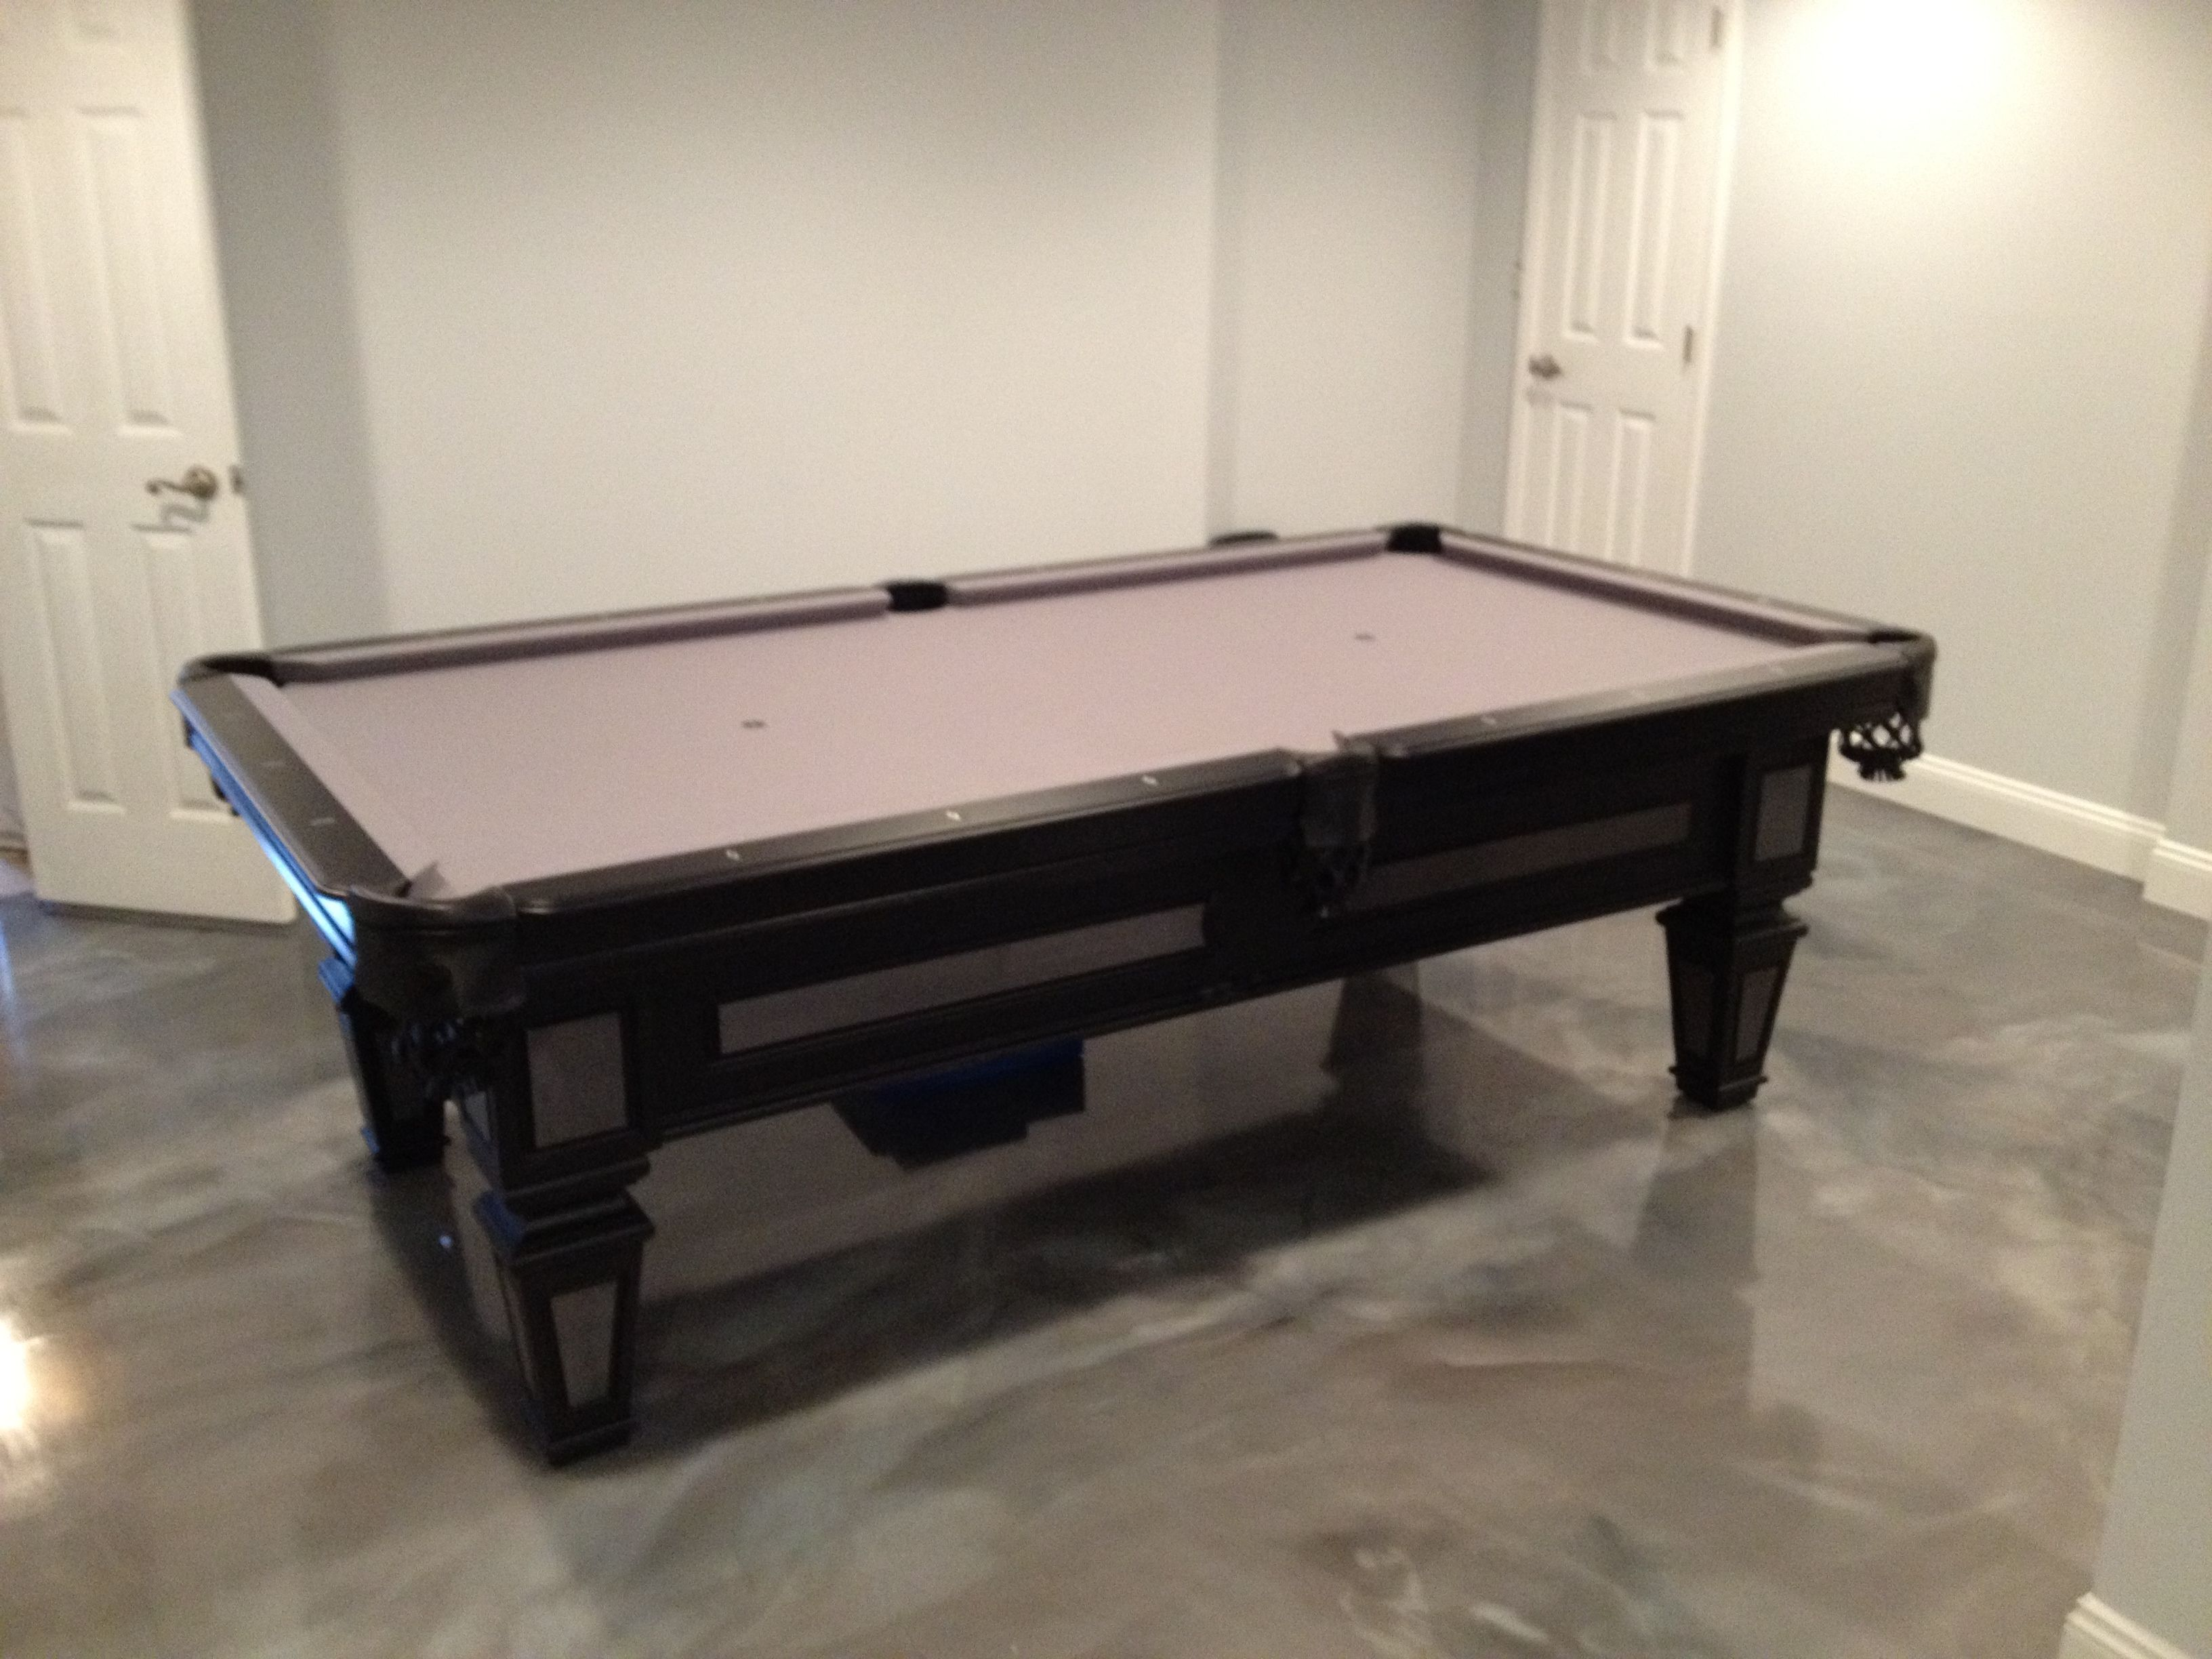 8u0027 Olhausen Brentwood Pool Table With A Matte Black Laquer And Graphite On  Maple Finish